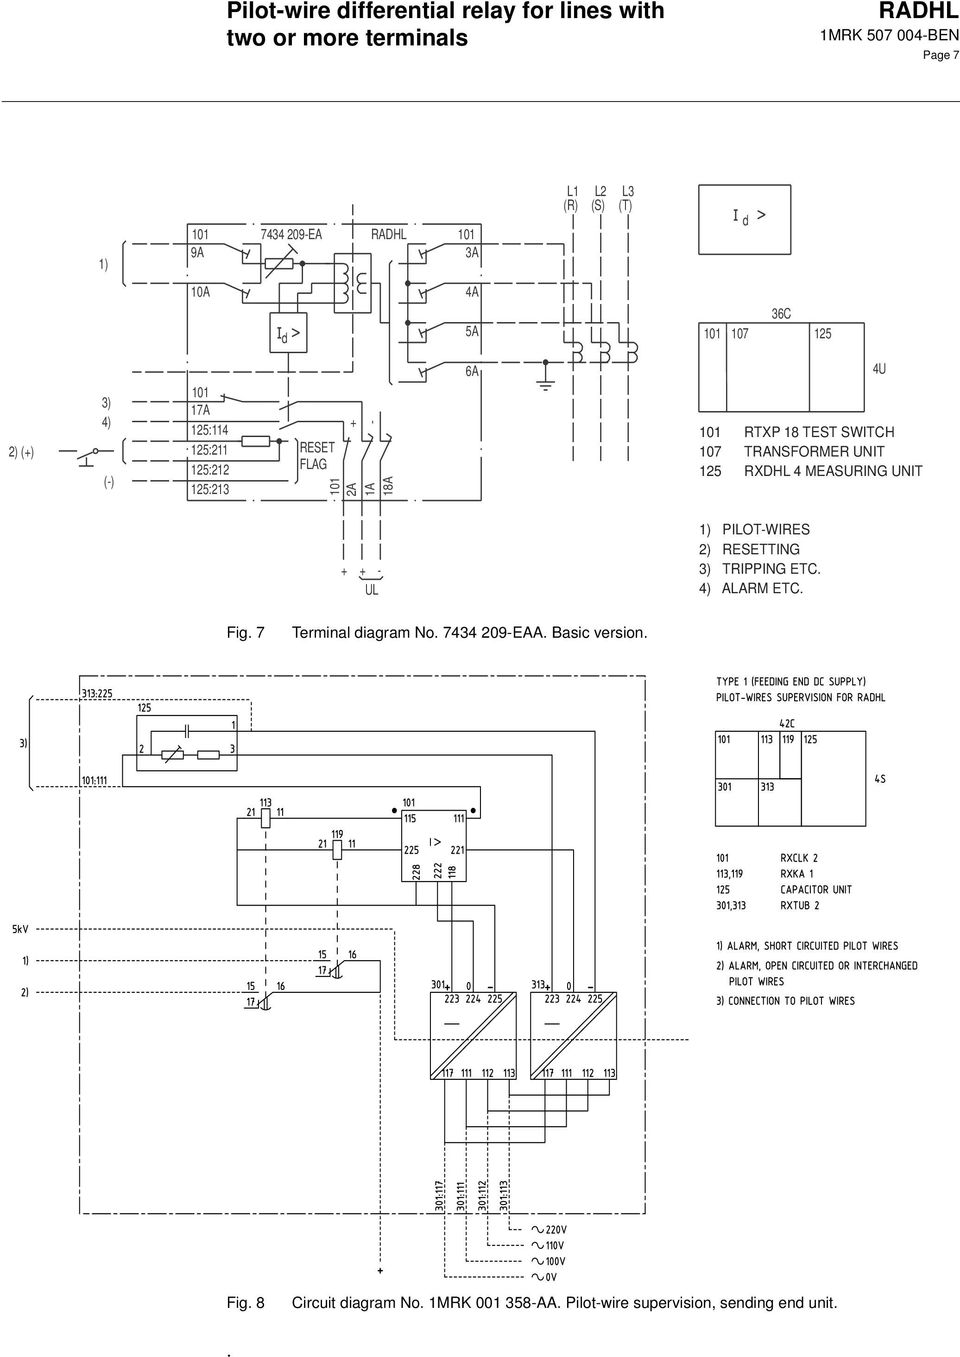 TRANSFORMER UNIT 125 RXDHL 4 MEASURING UNIT + + - UL 1) PILOT-WIRES 2) RESETTING 3) TRIPPING ETC. 4) ALARM ETC. Fig.